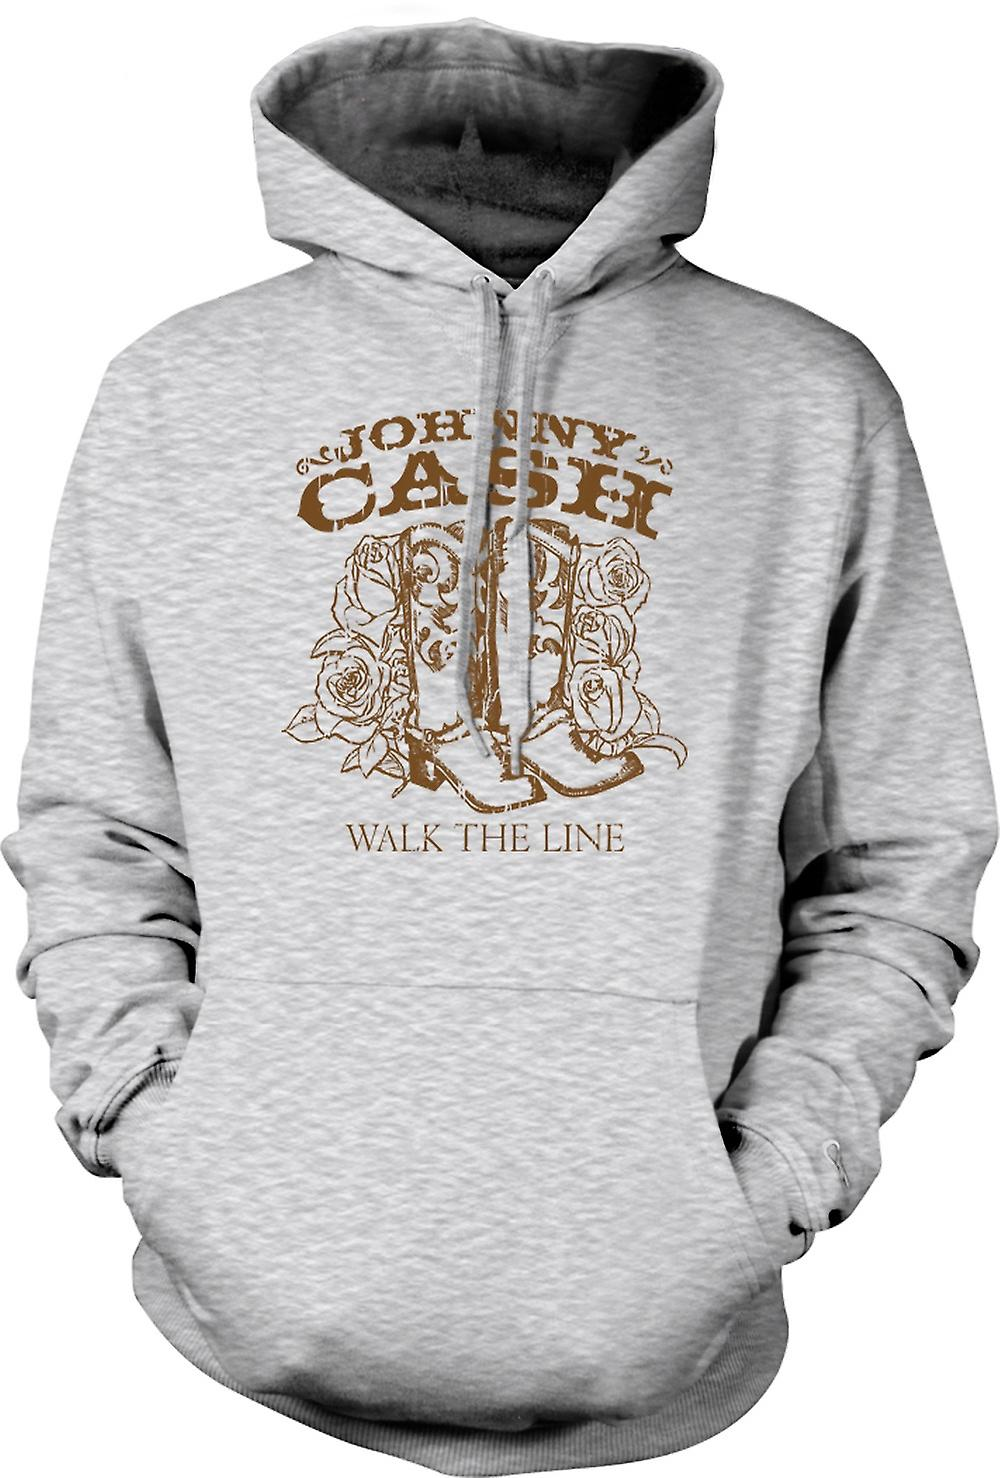 Mens Hoodie - Johnny Cash - Walk The Line